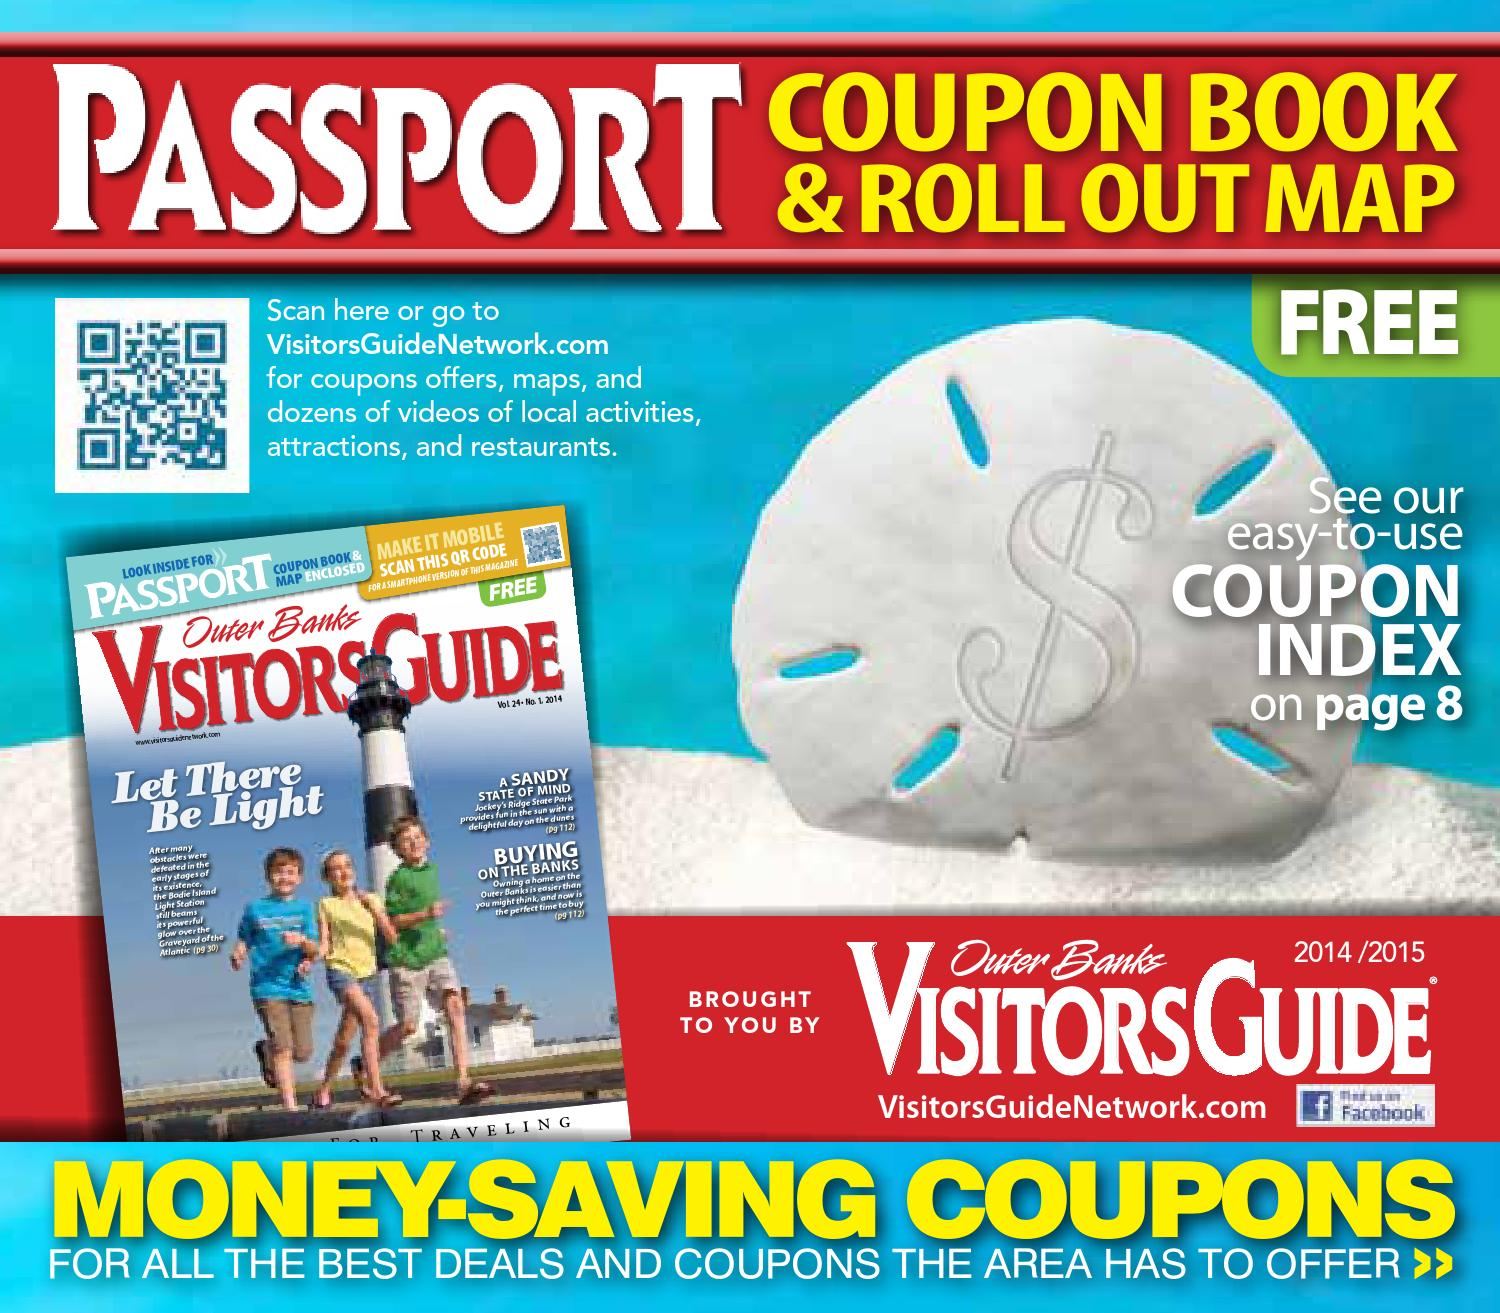 Outer Banks Passport Coupon Book 2014 2015 by VistaGraphics issuu